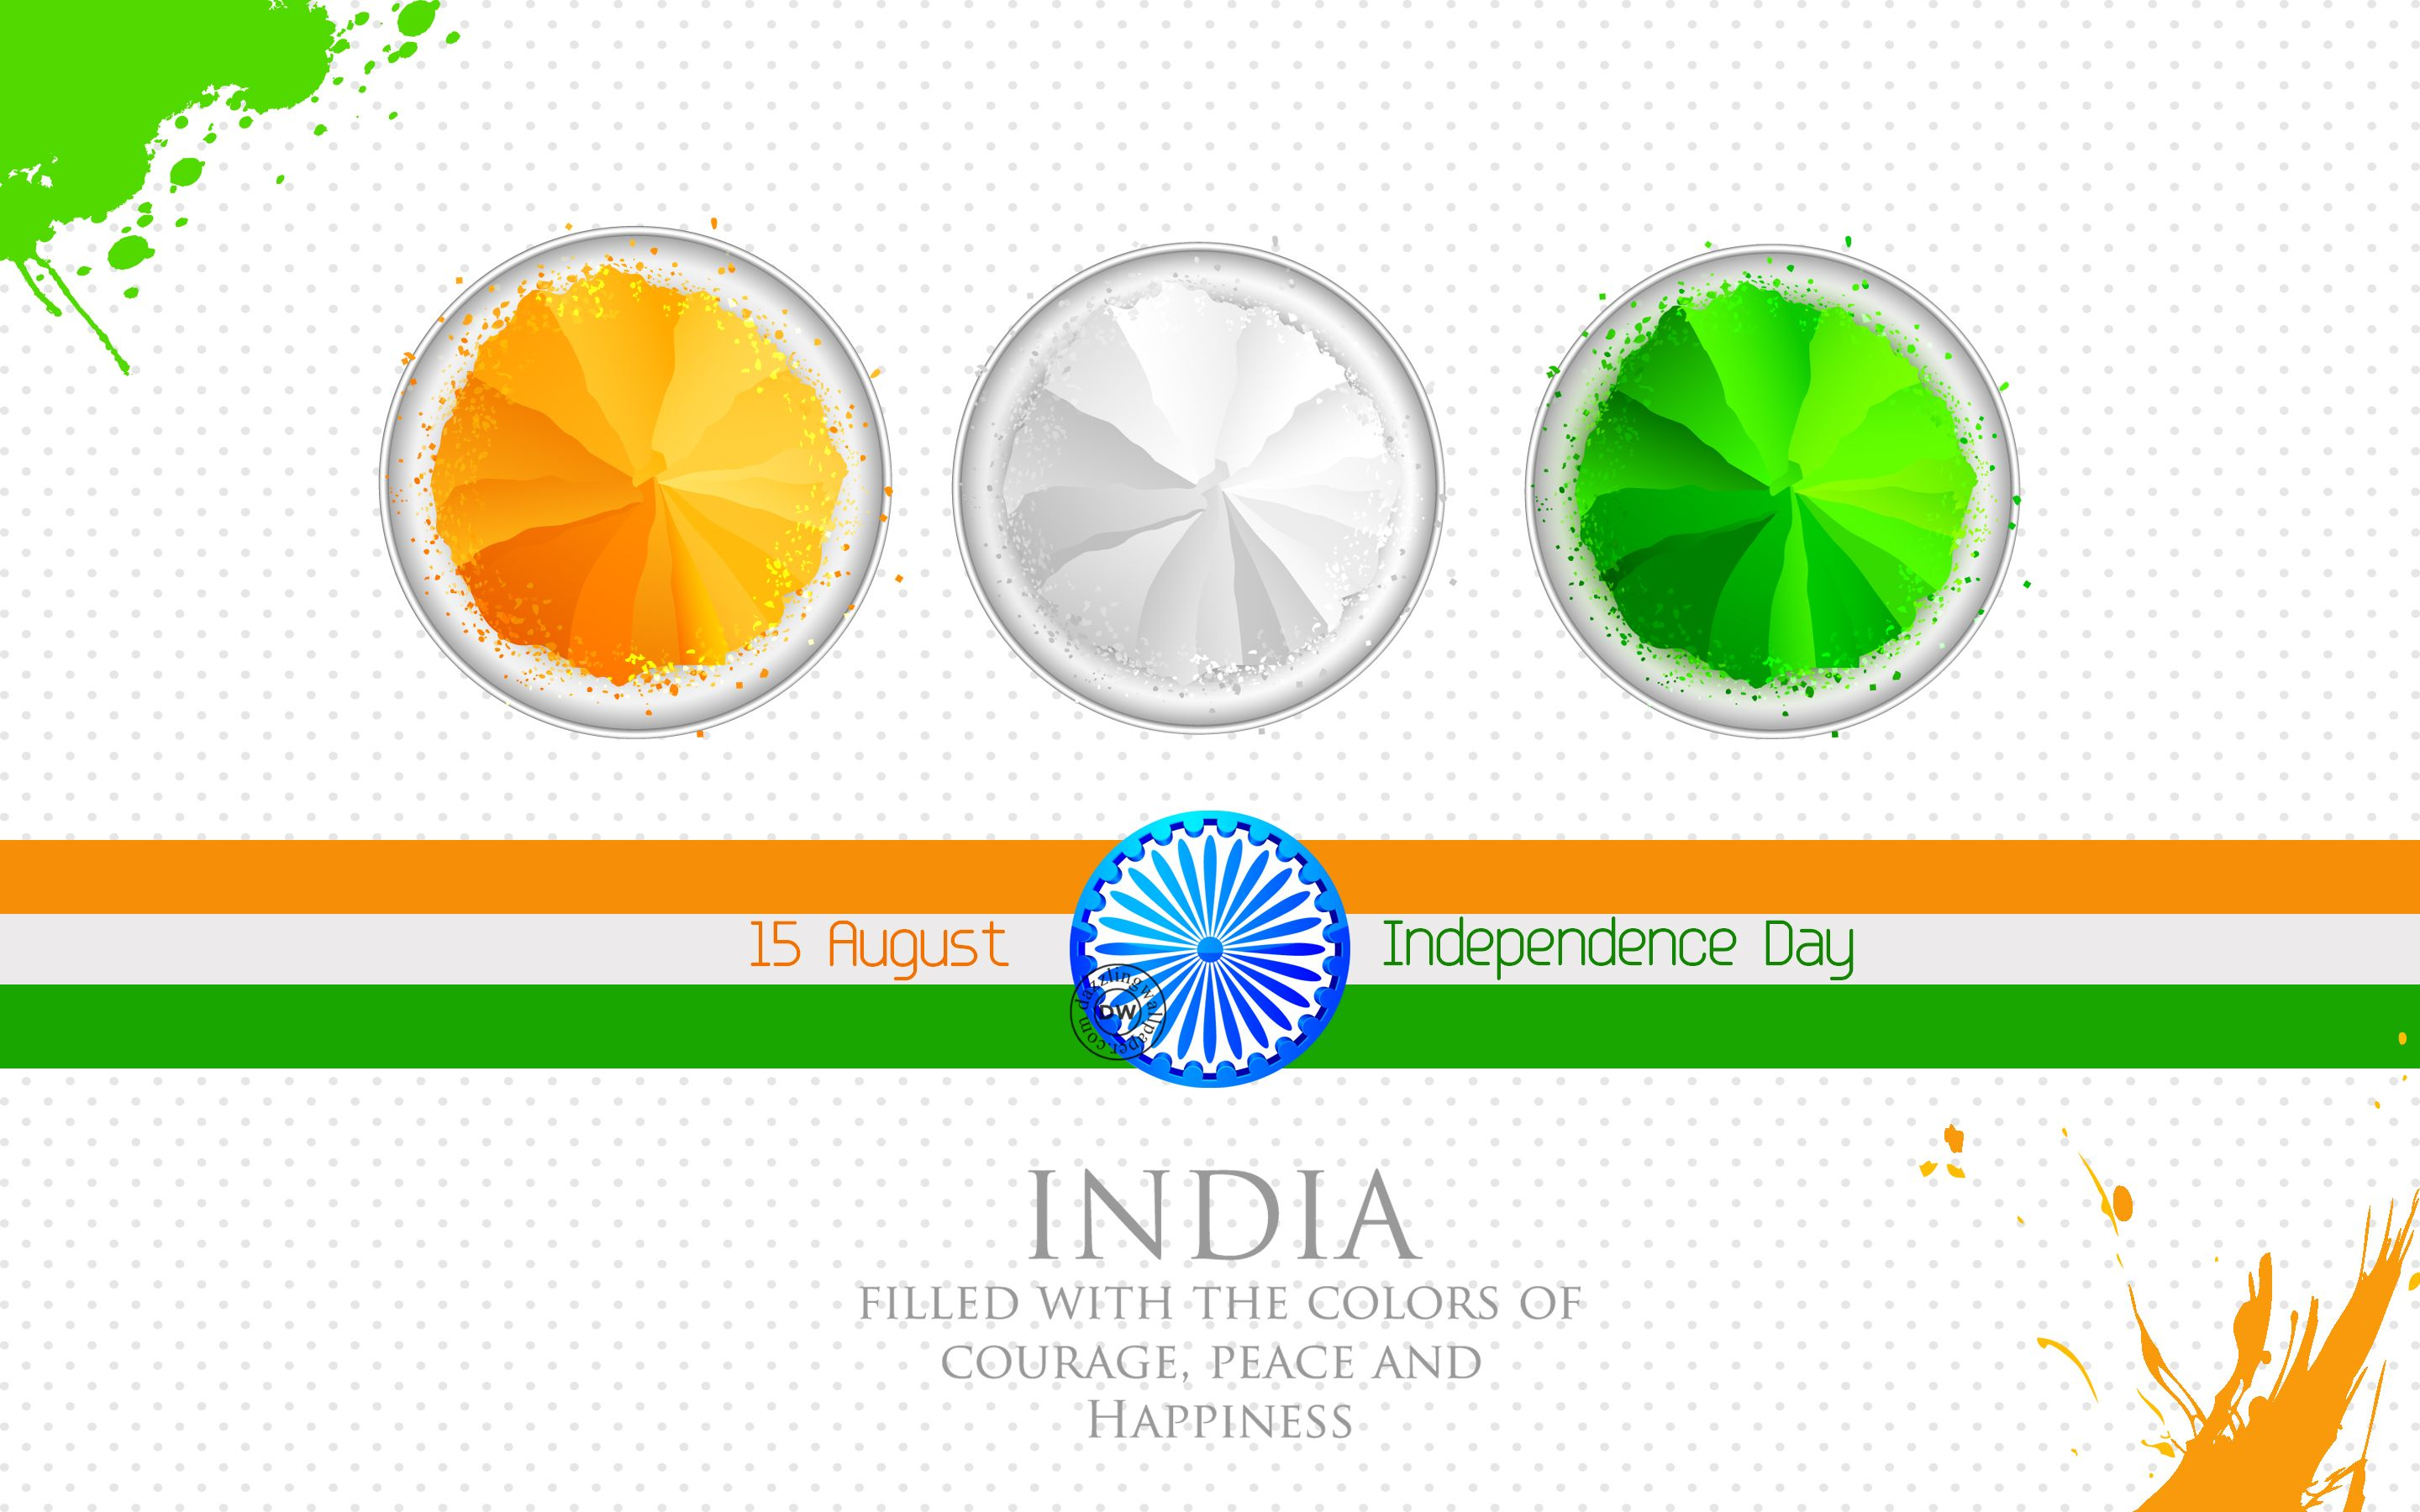 15 august HD Wallpaper Independence Day 15th August Wallpapers 2880x1800